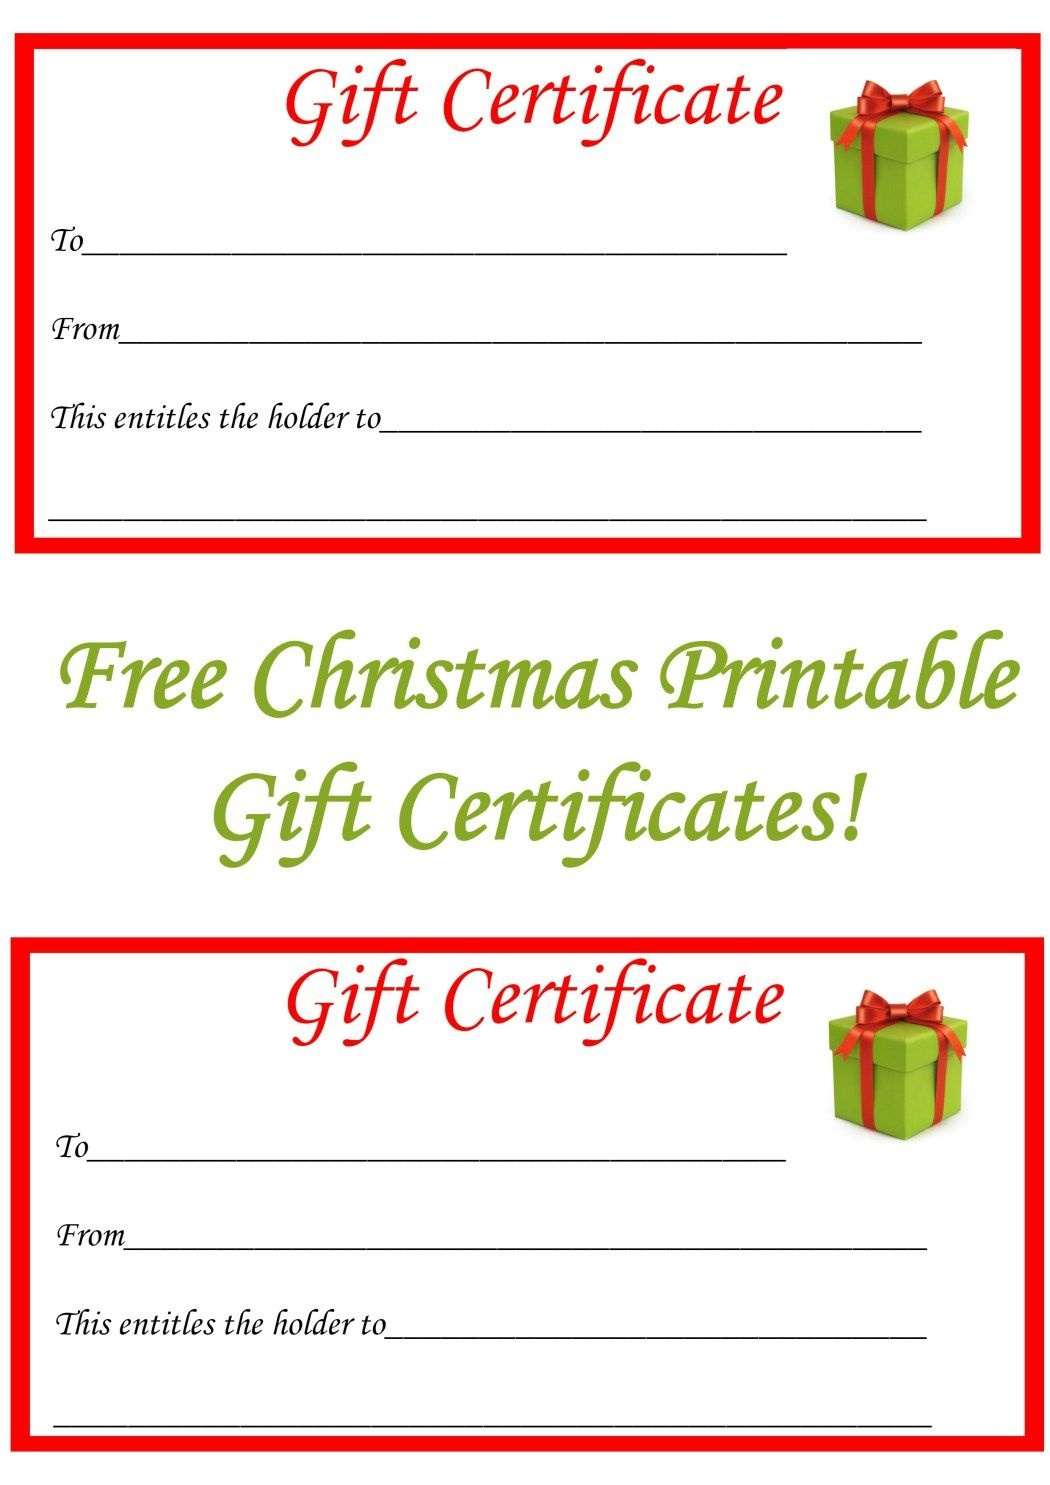 Free Christmas Printable Gift Certificates   Gift Ideas   Christmas - Free Printable Gift Certificate Templates For Massage